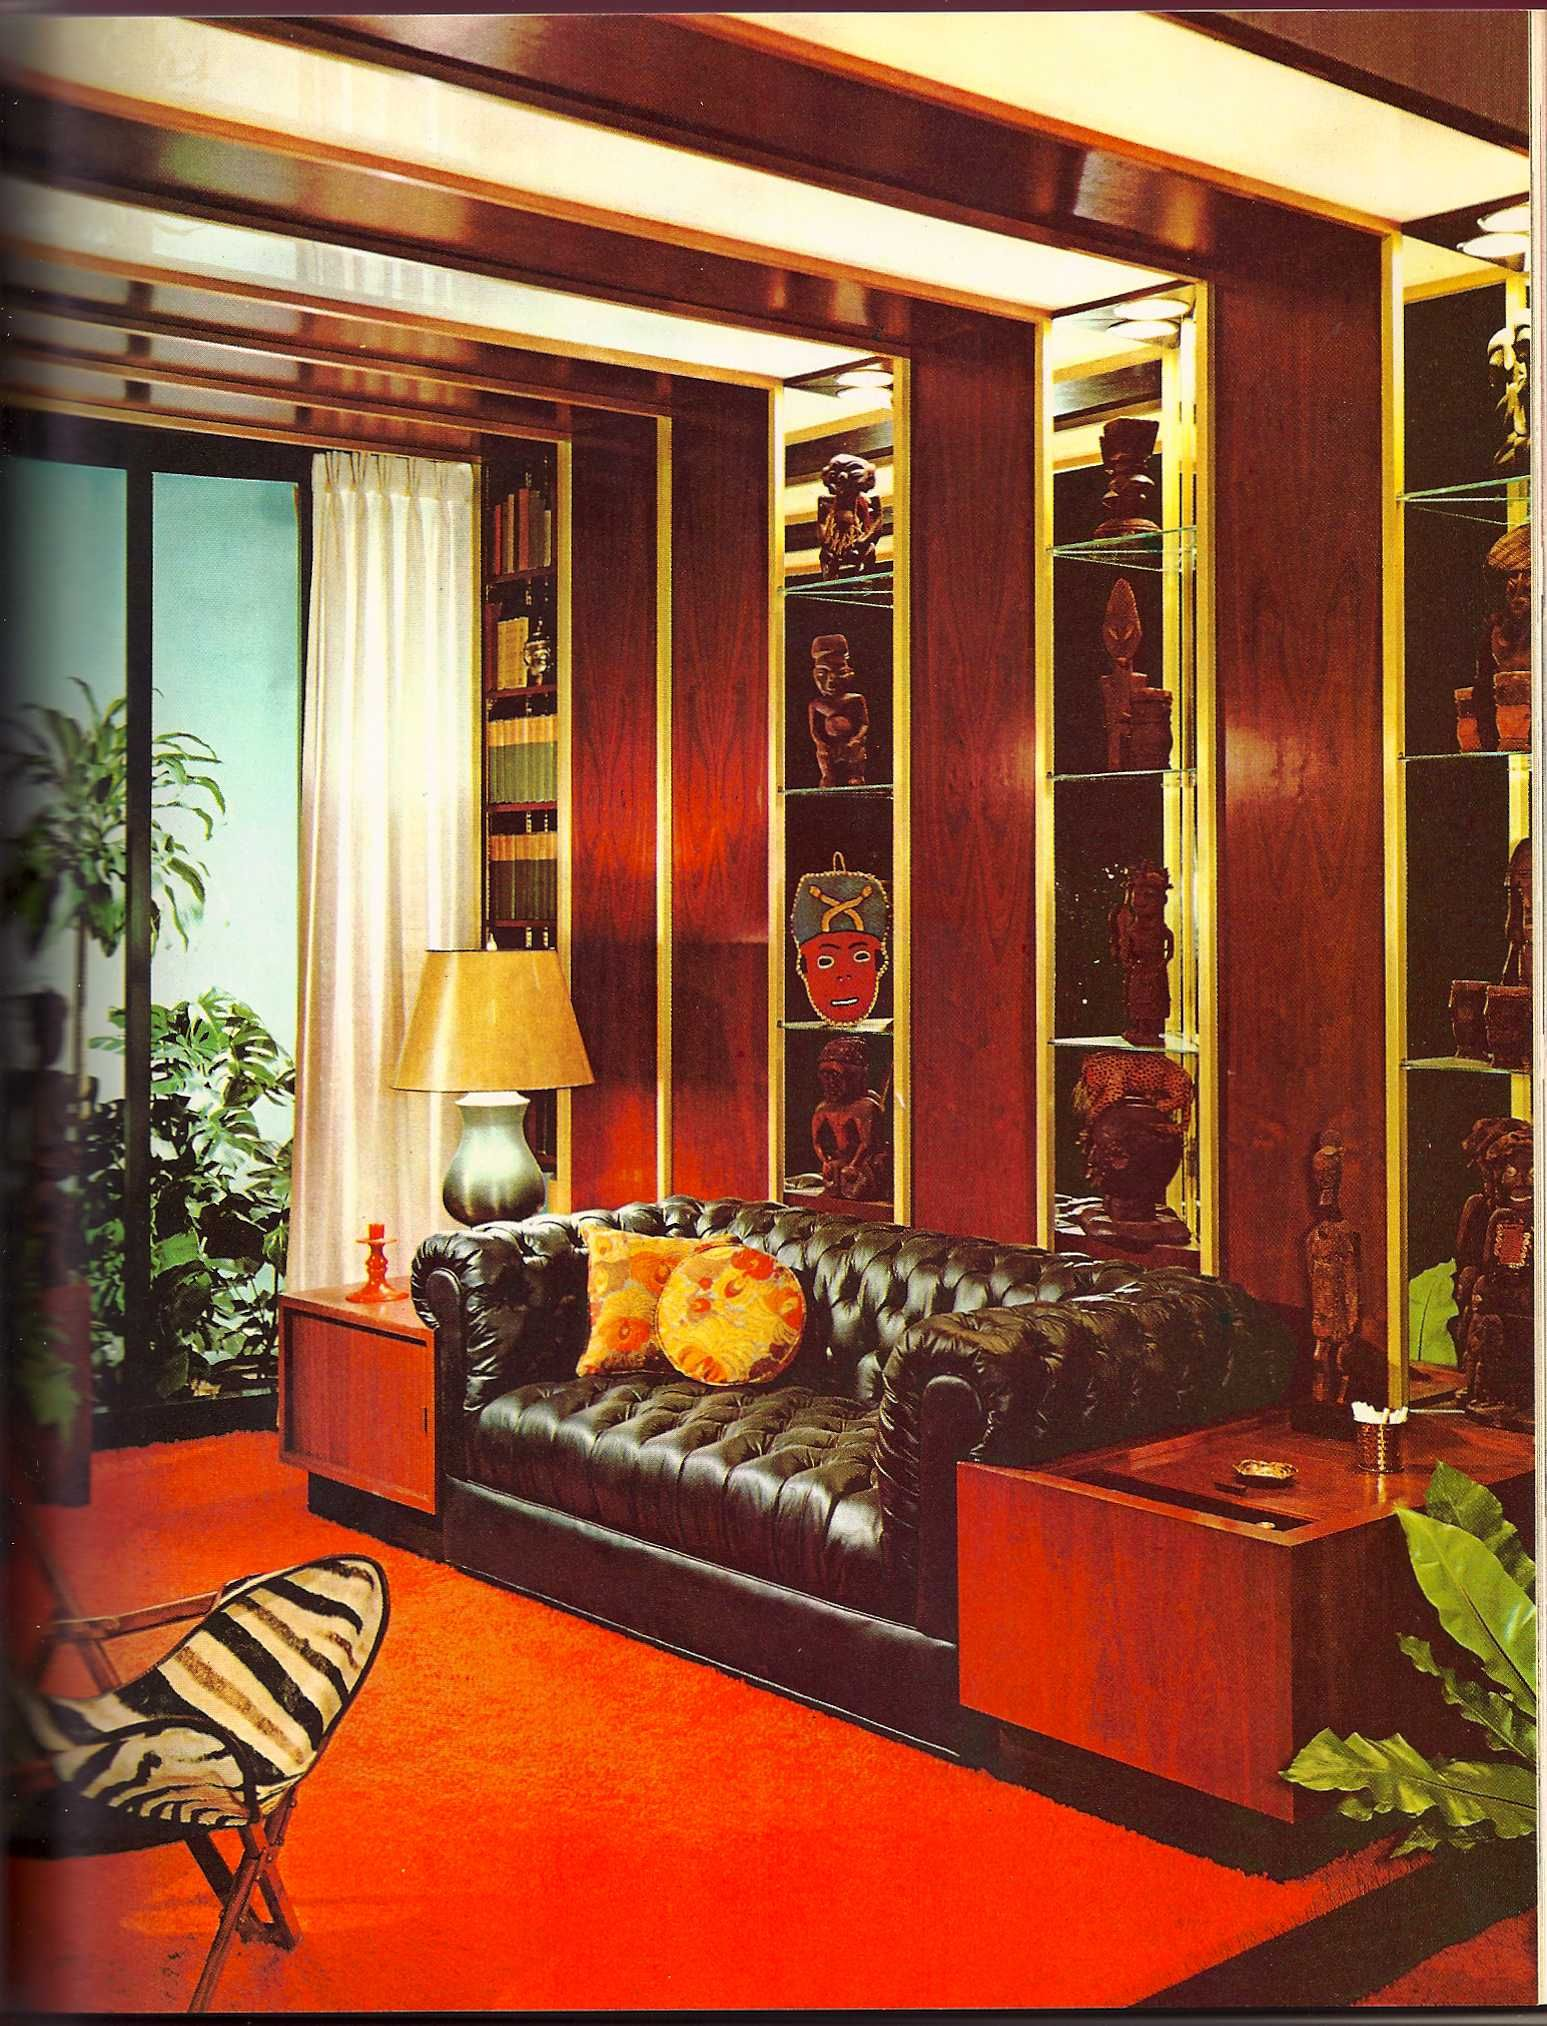 70s Interior Design Book 5